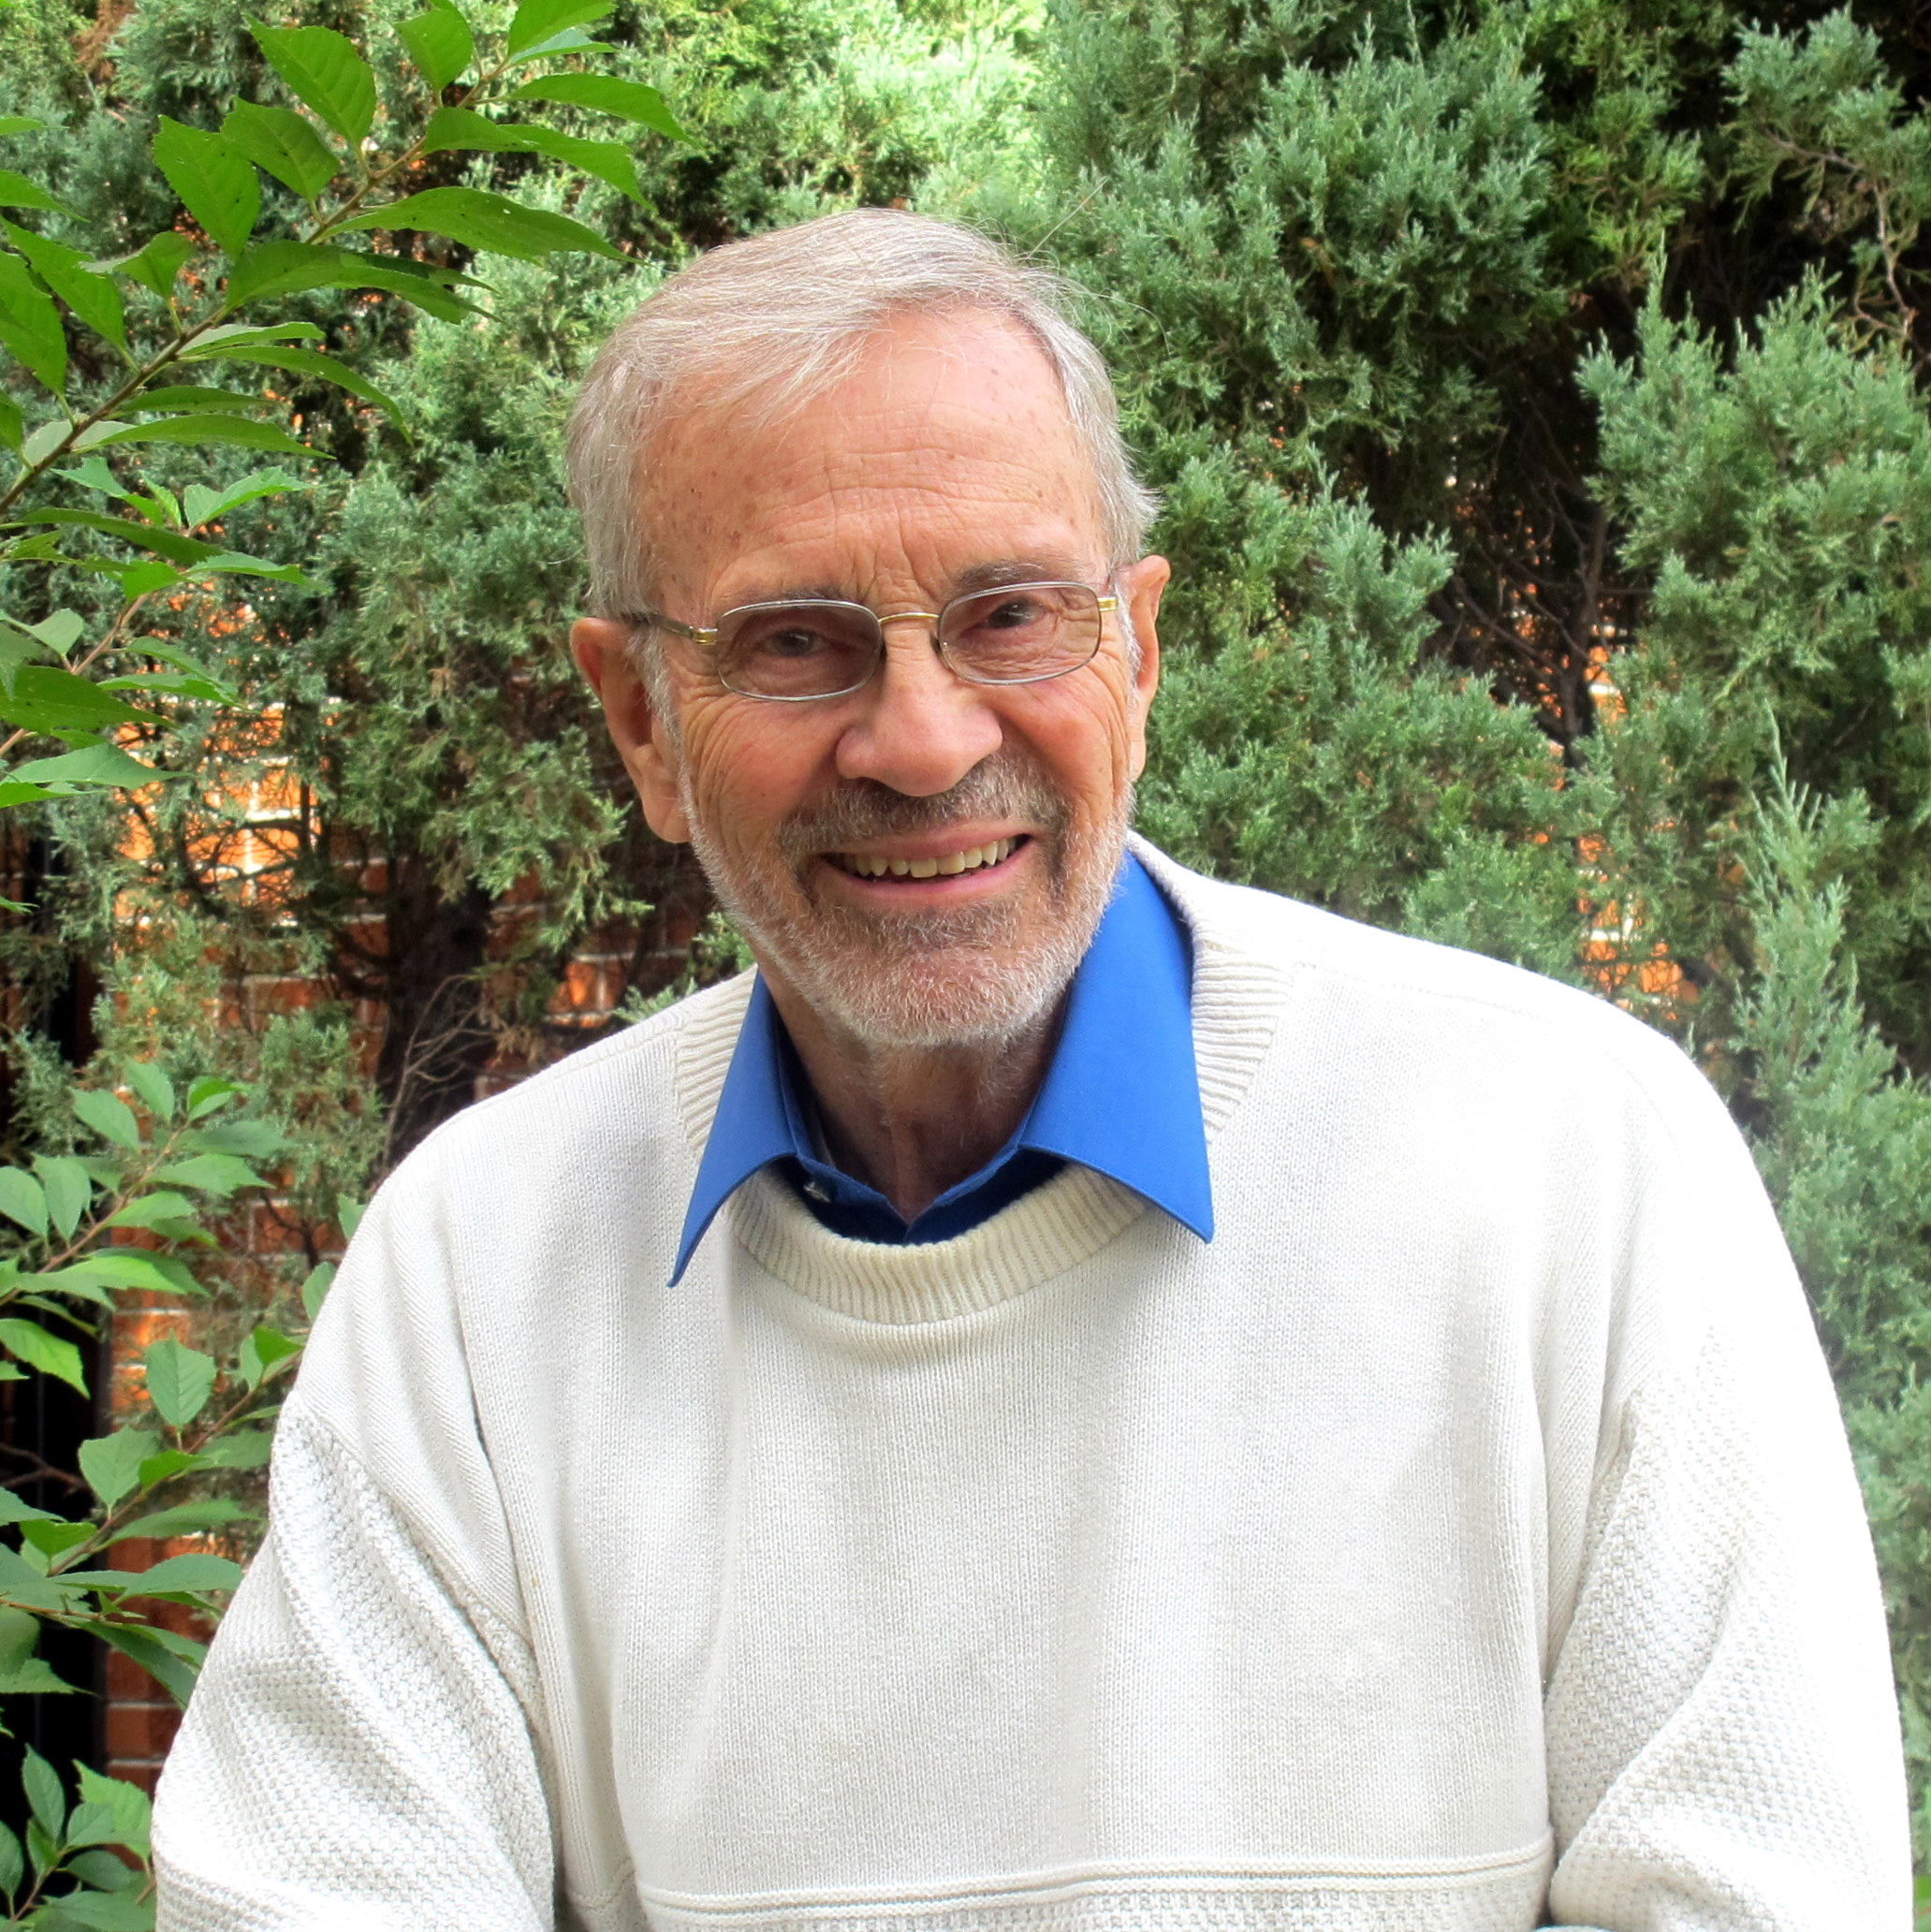 Ron Smith, NDSU Extension Service Horticulturist